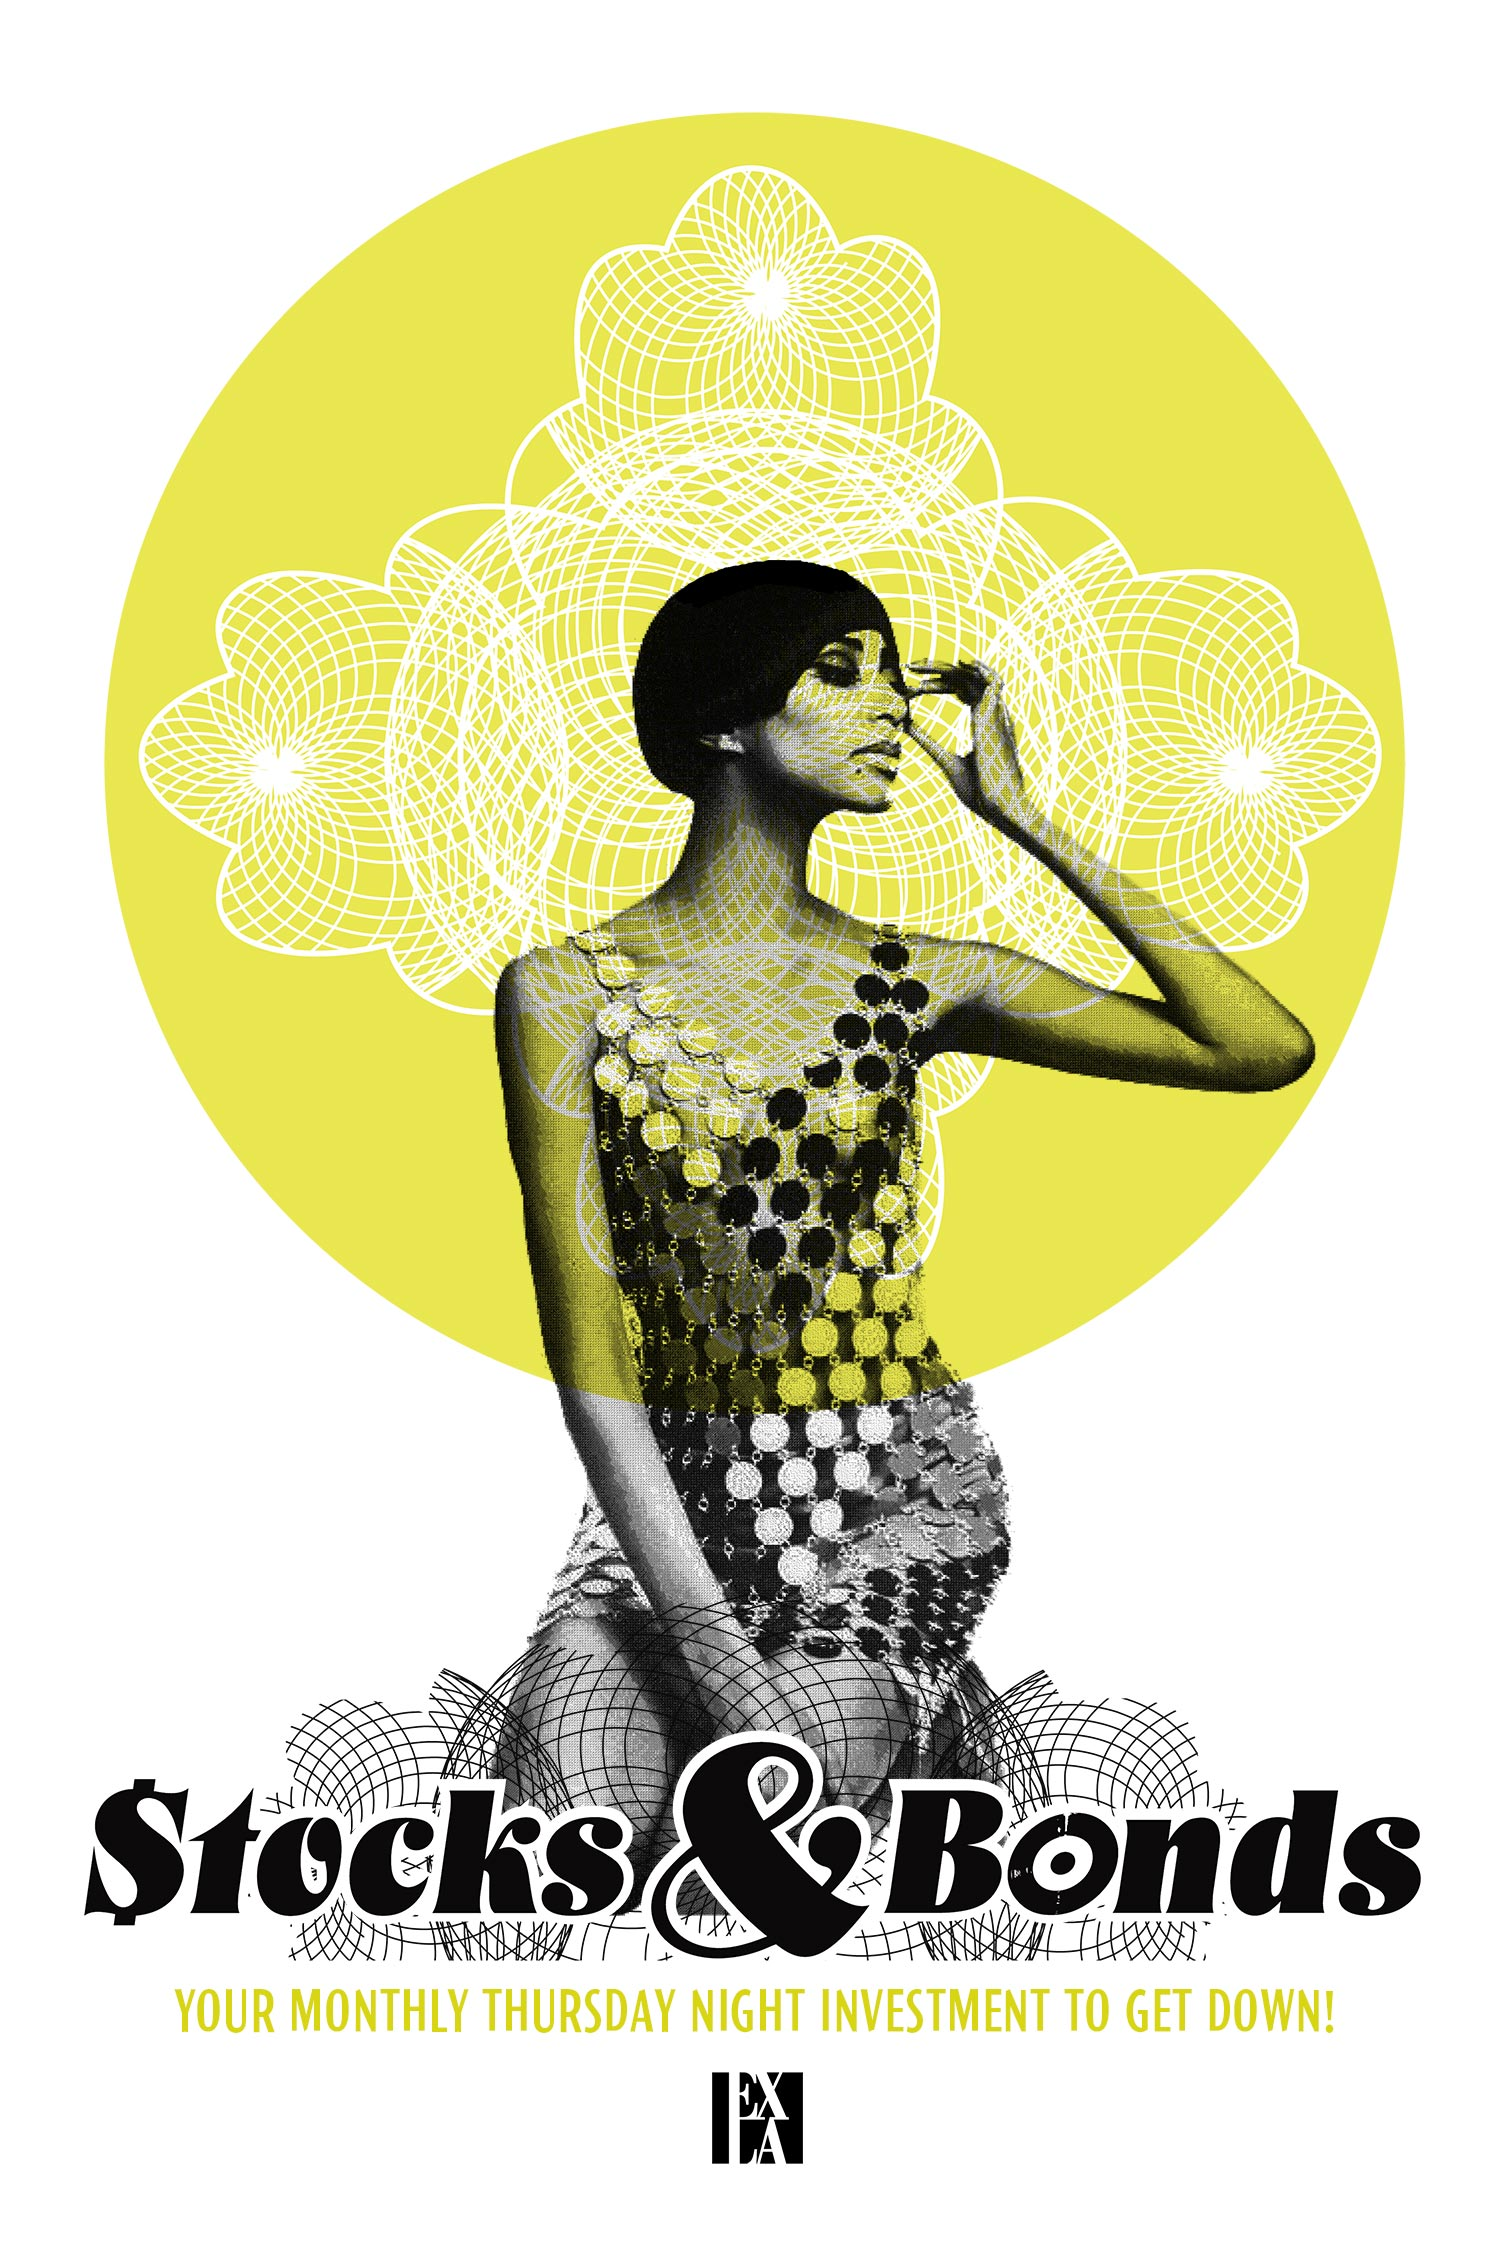 Stocks-&-Bonds-Poster.jpg